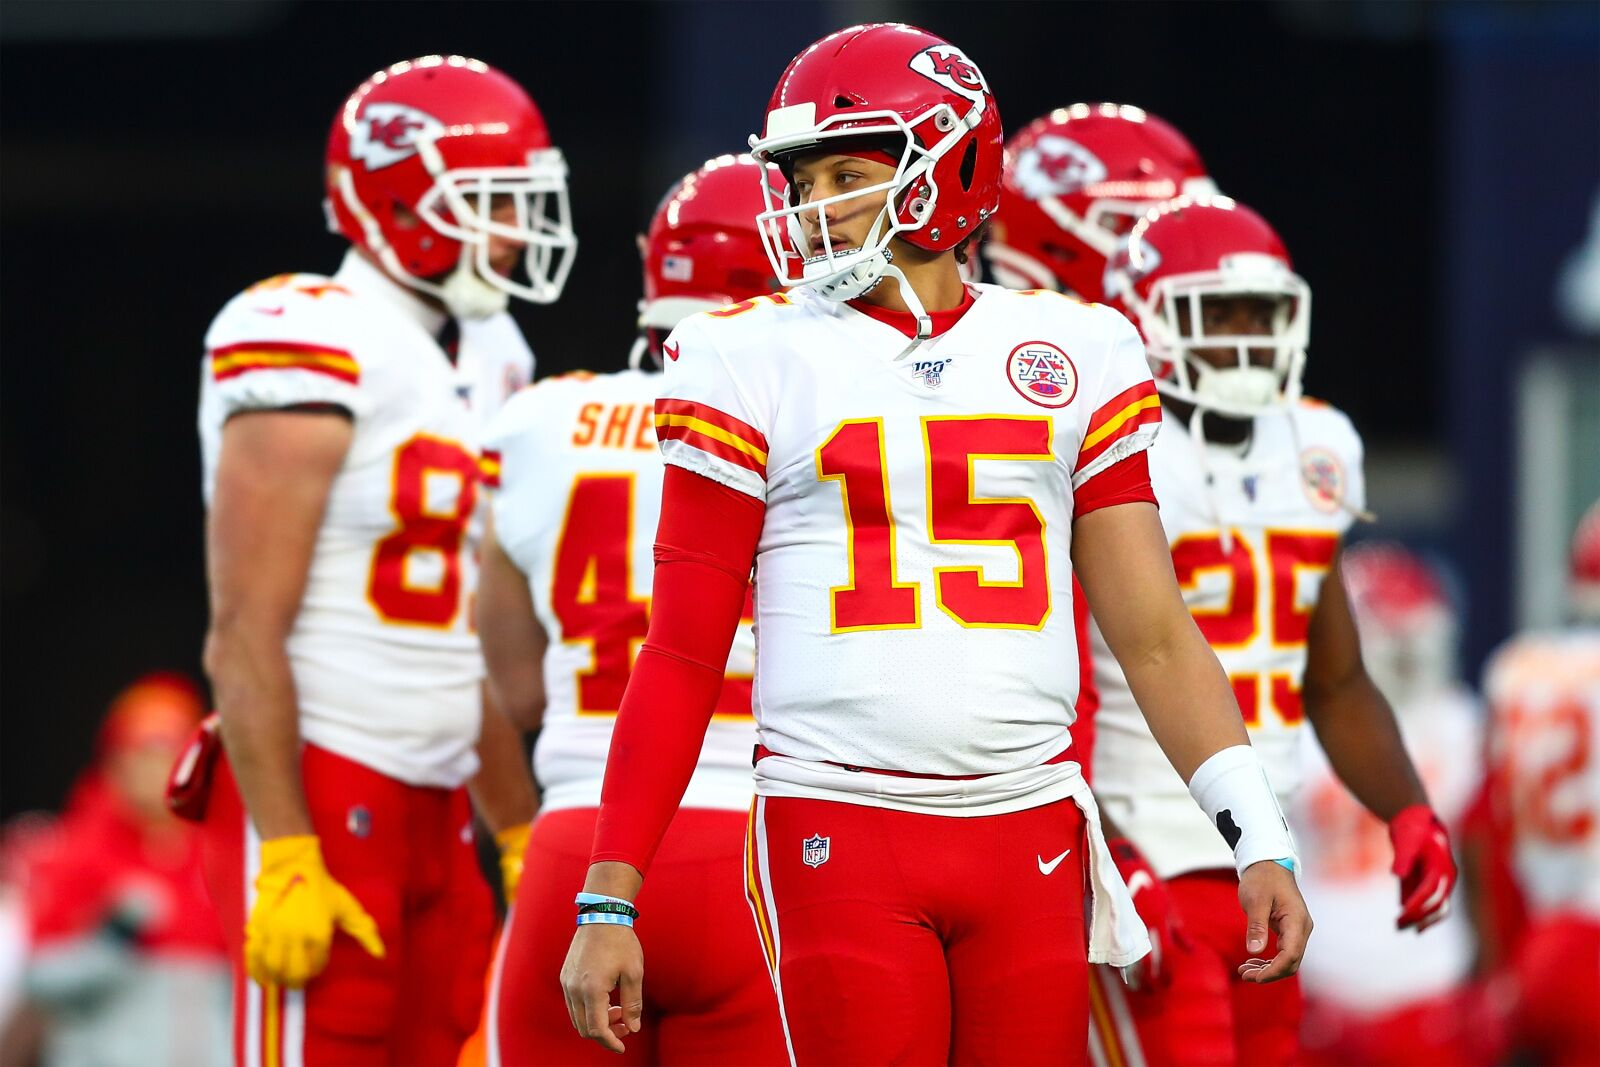 Kansas City Chiefs: NFL playoff picture after week 14 of 2019